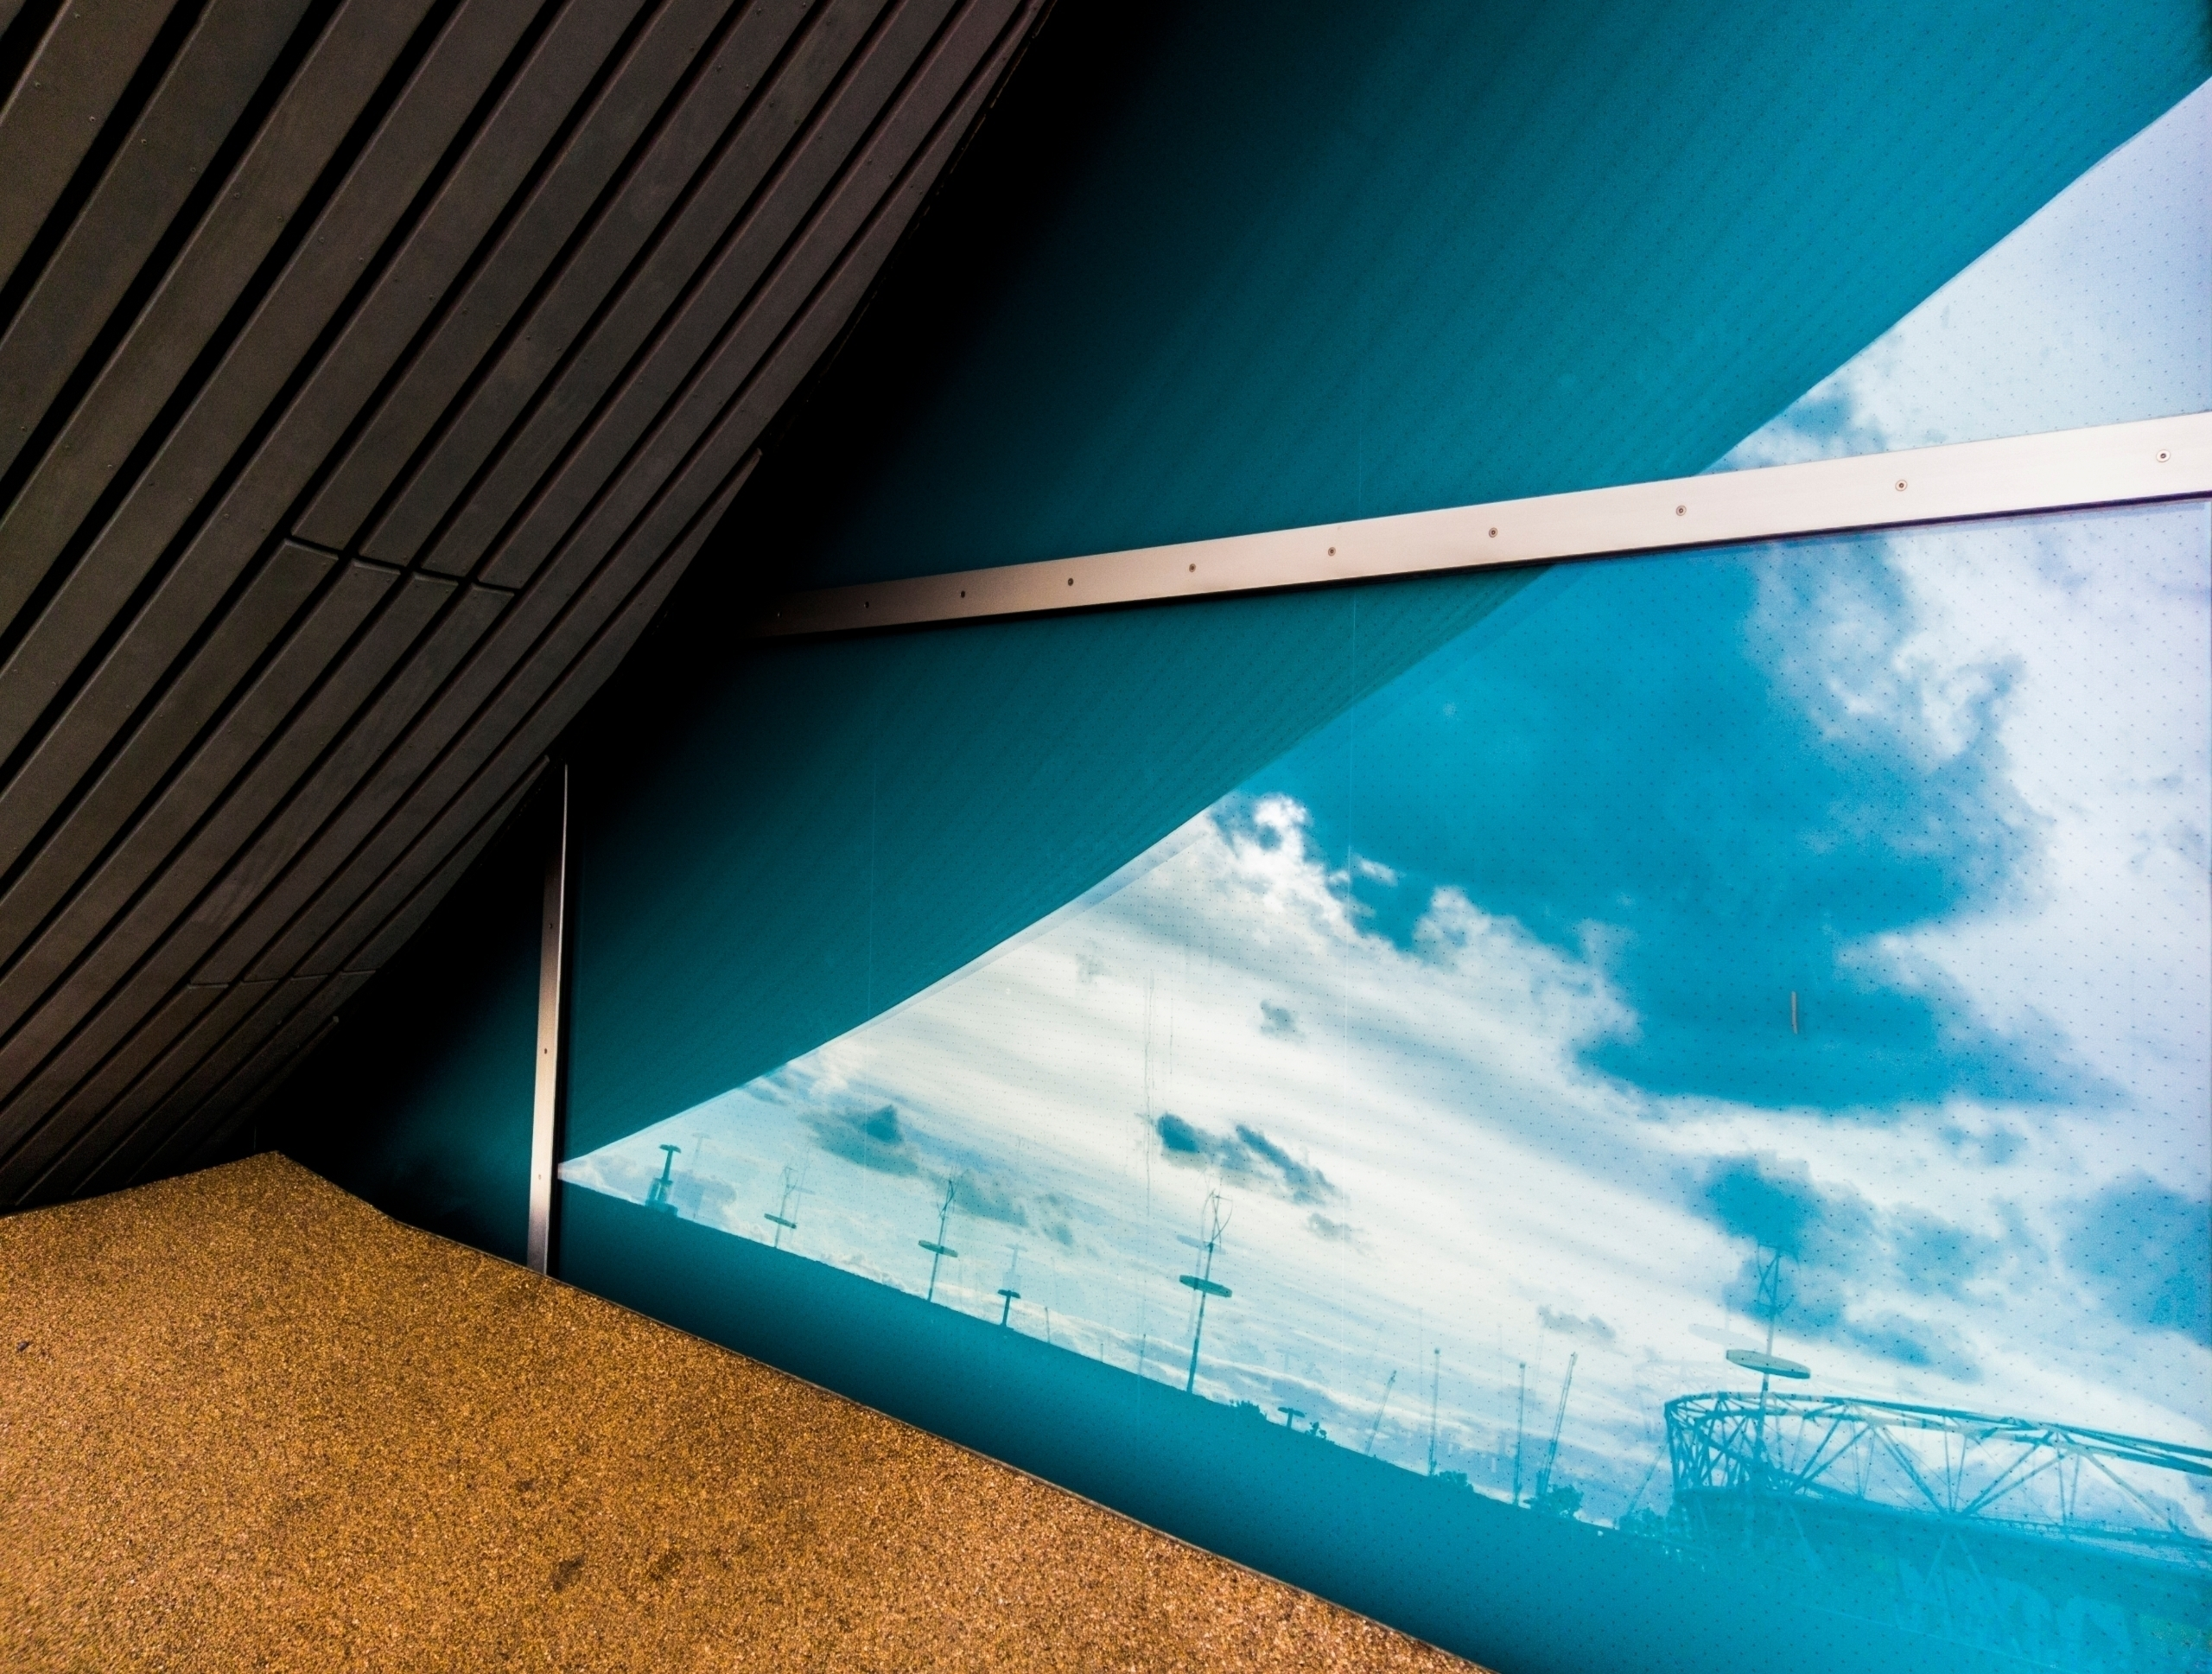 London Olympic Park swimming po - notabene | ello